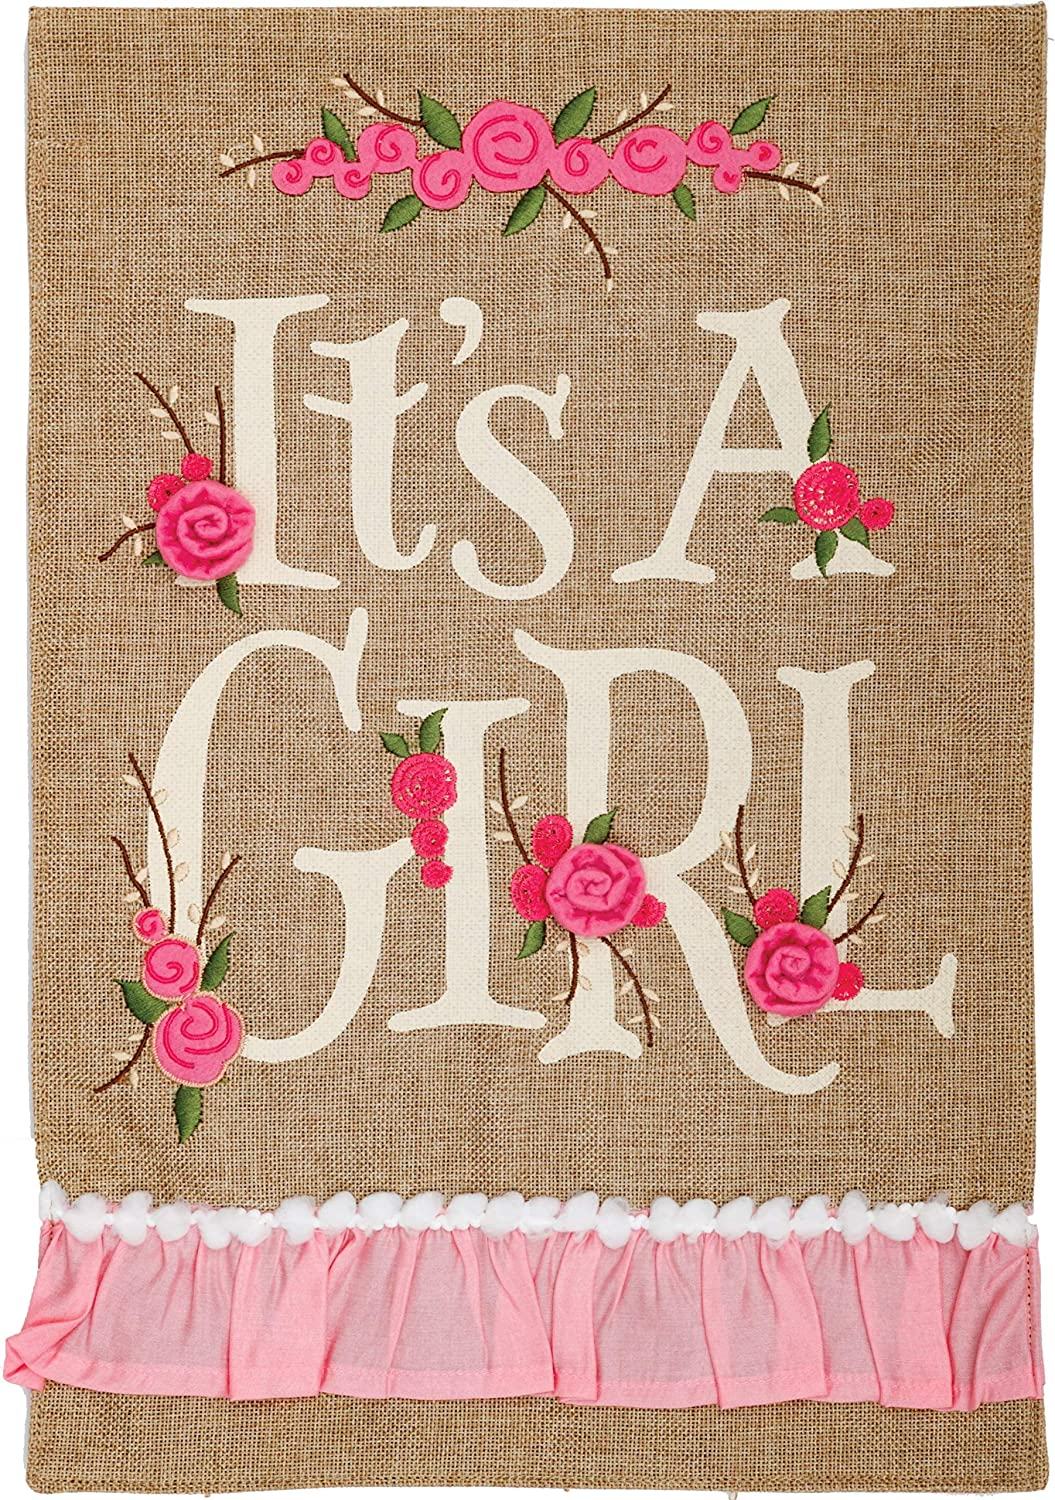 Custom Decor It's a Girl - Garden Size, Emboidered Applique Style, Double Sided Decorative Flag - Approx. 12 Inch X 17.98 Inch